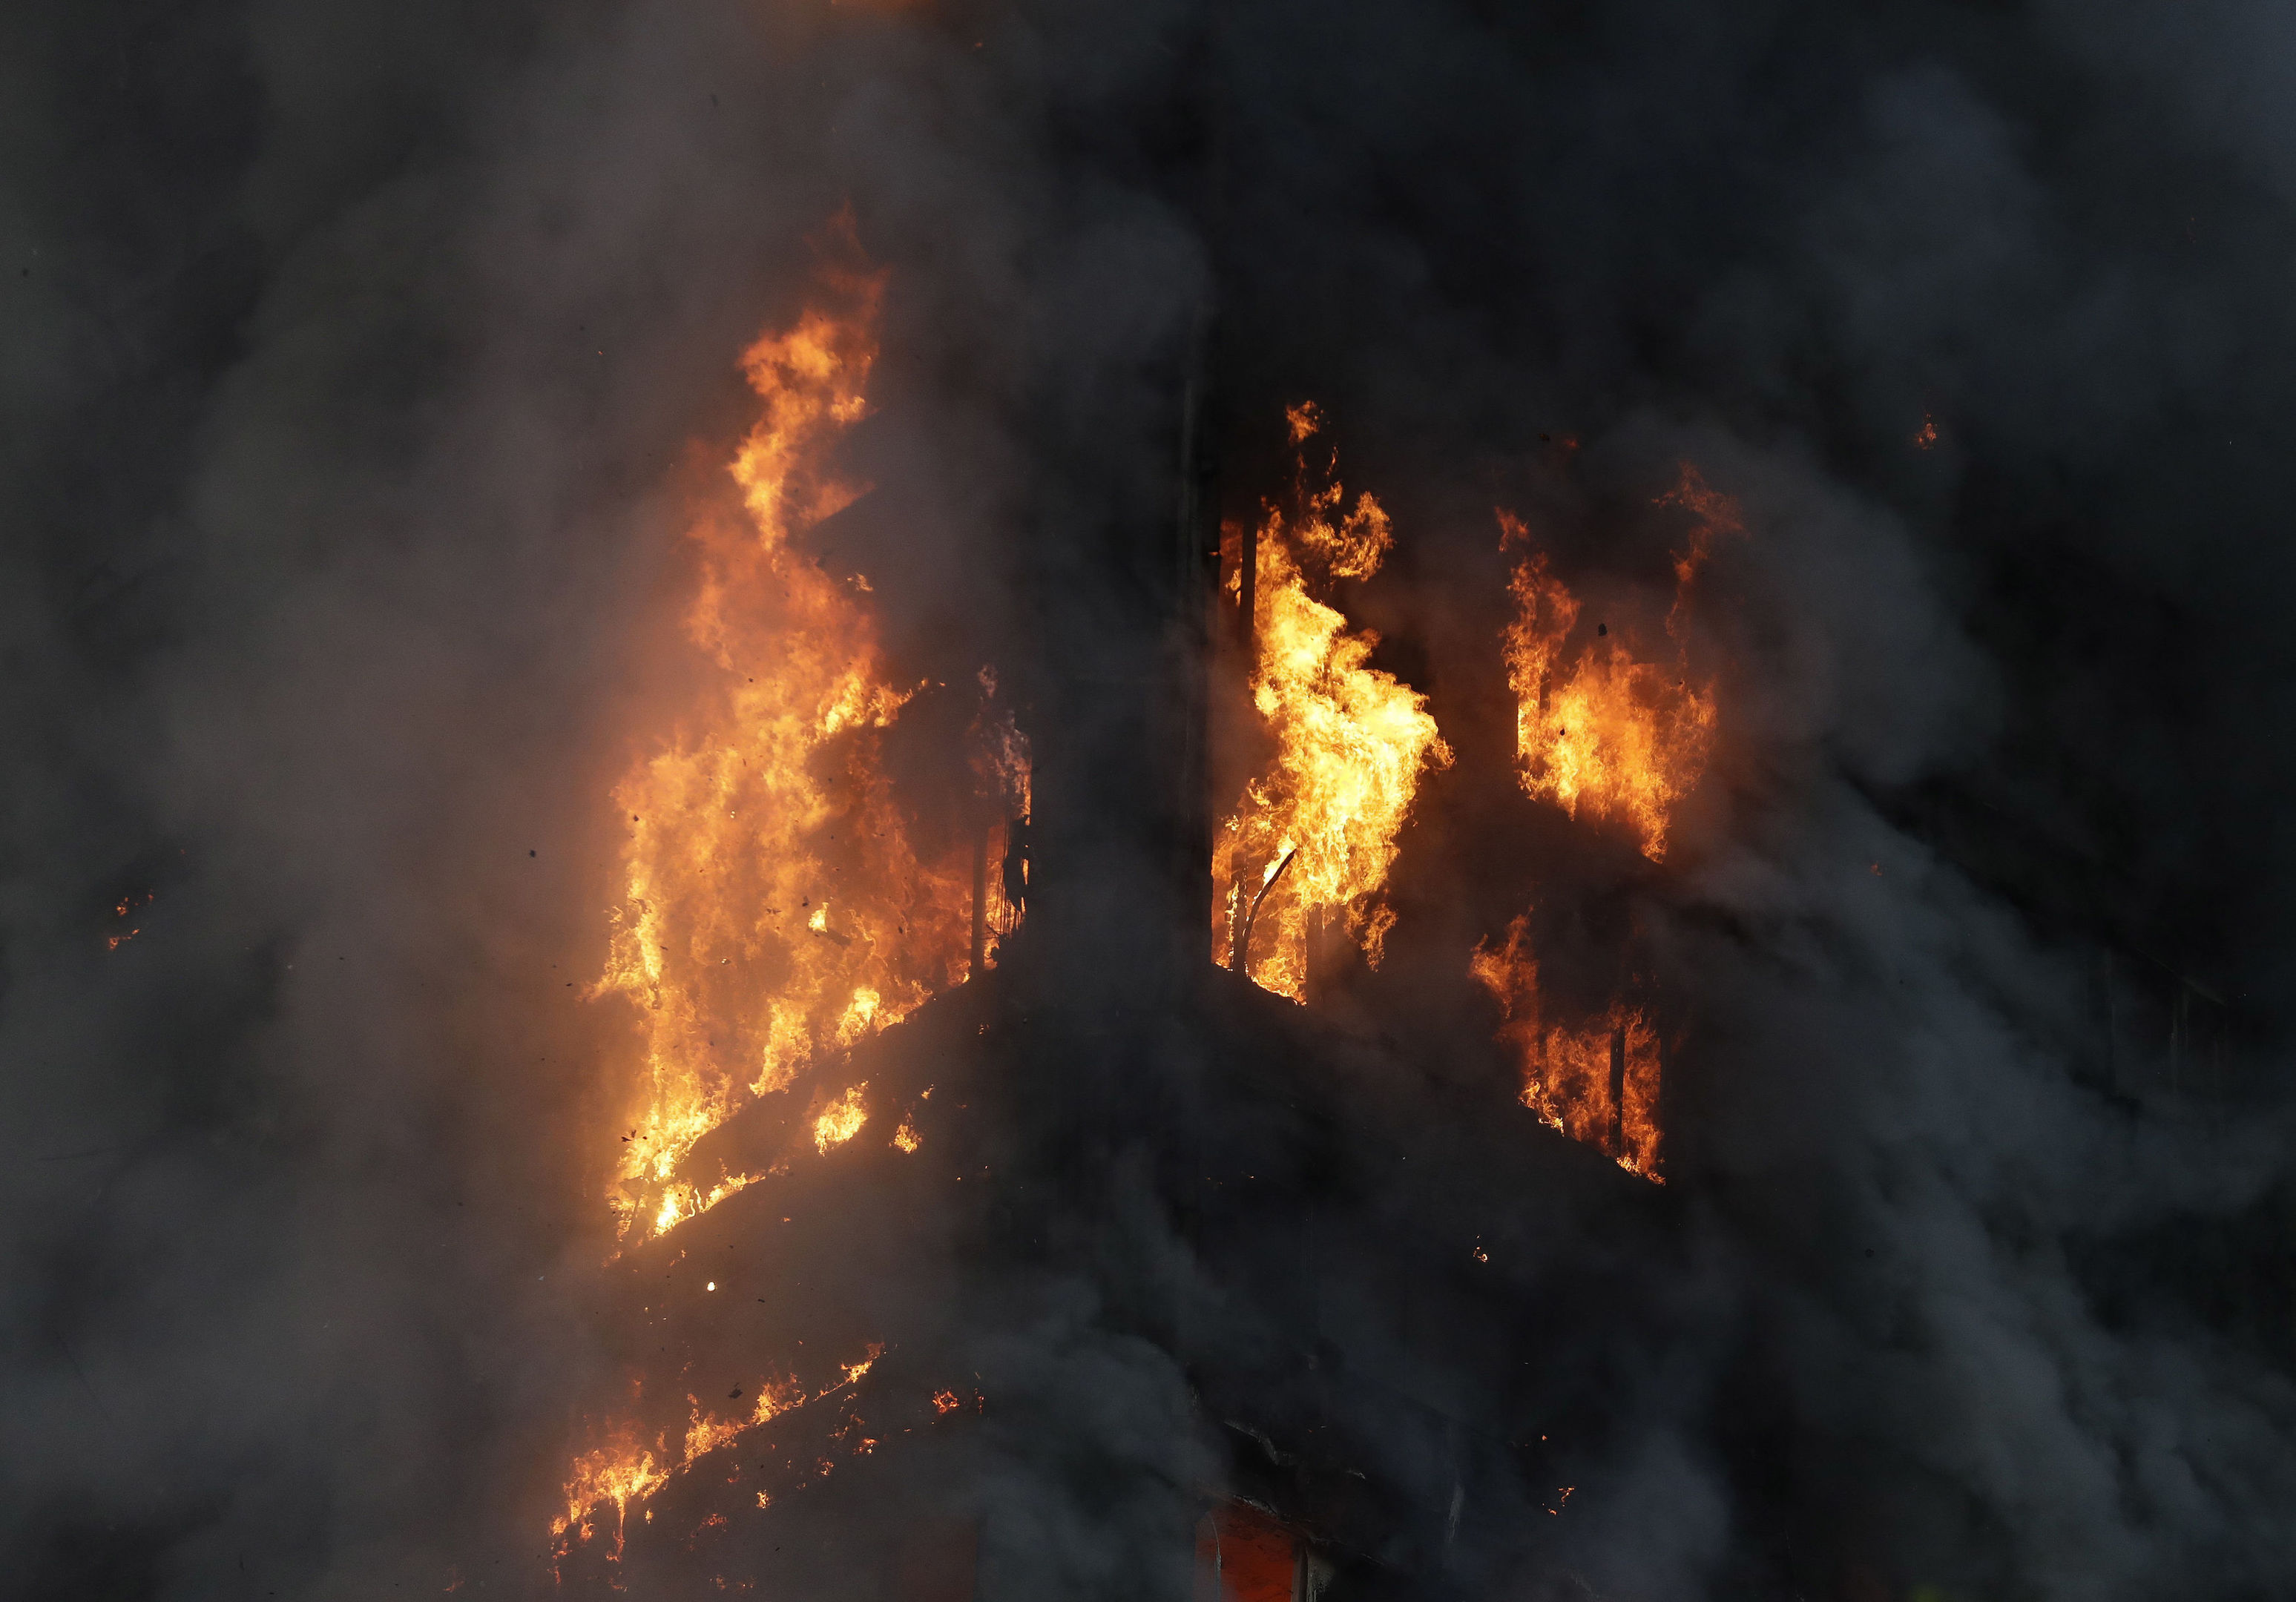 Smoke and flames rise from Grenfell Tower in London.